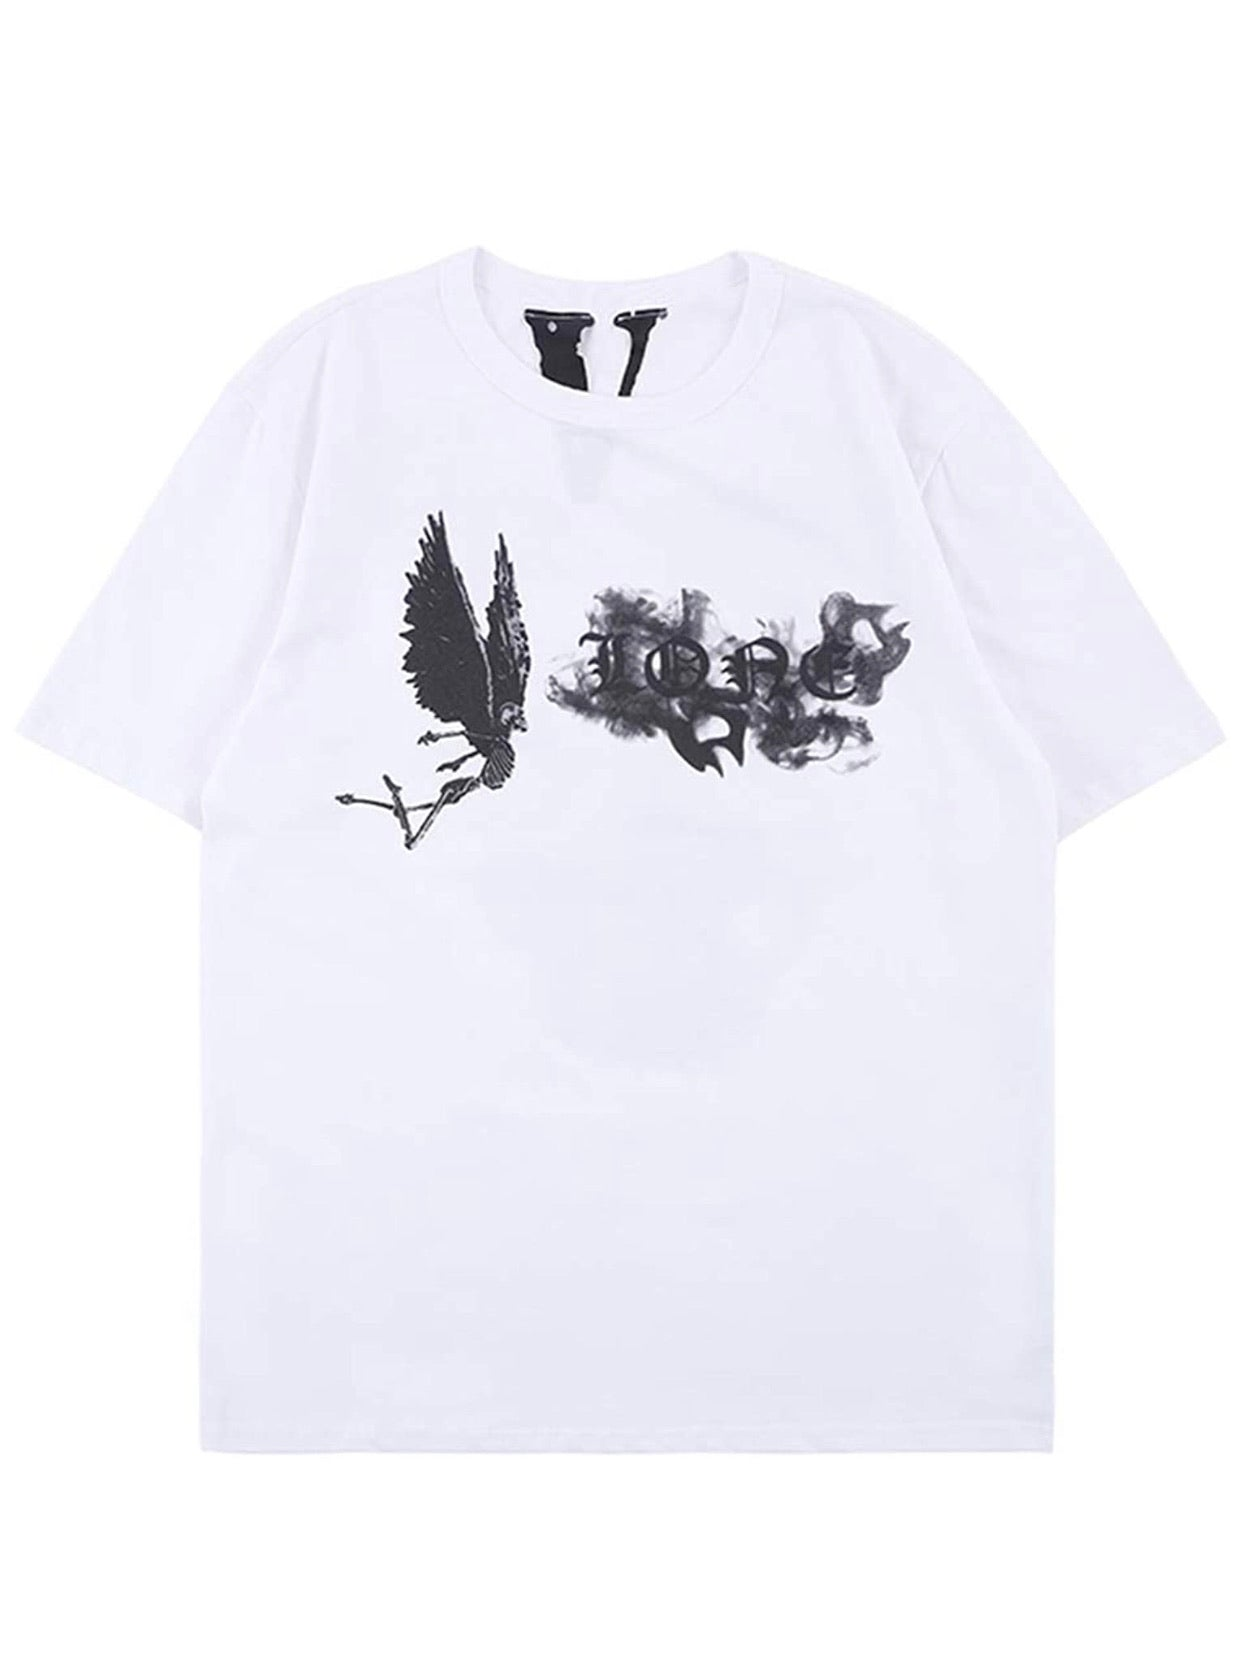 Vlone Smoke Tee White